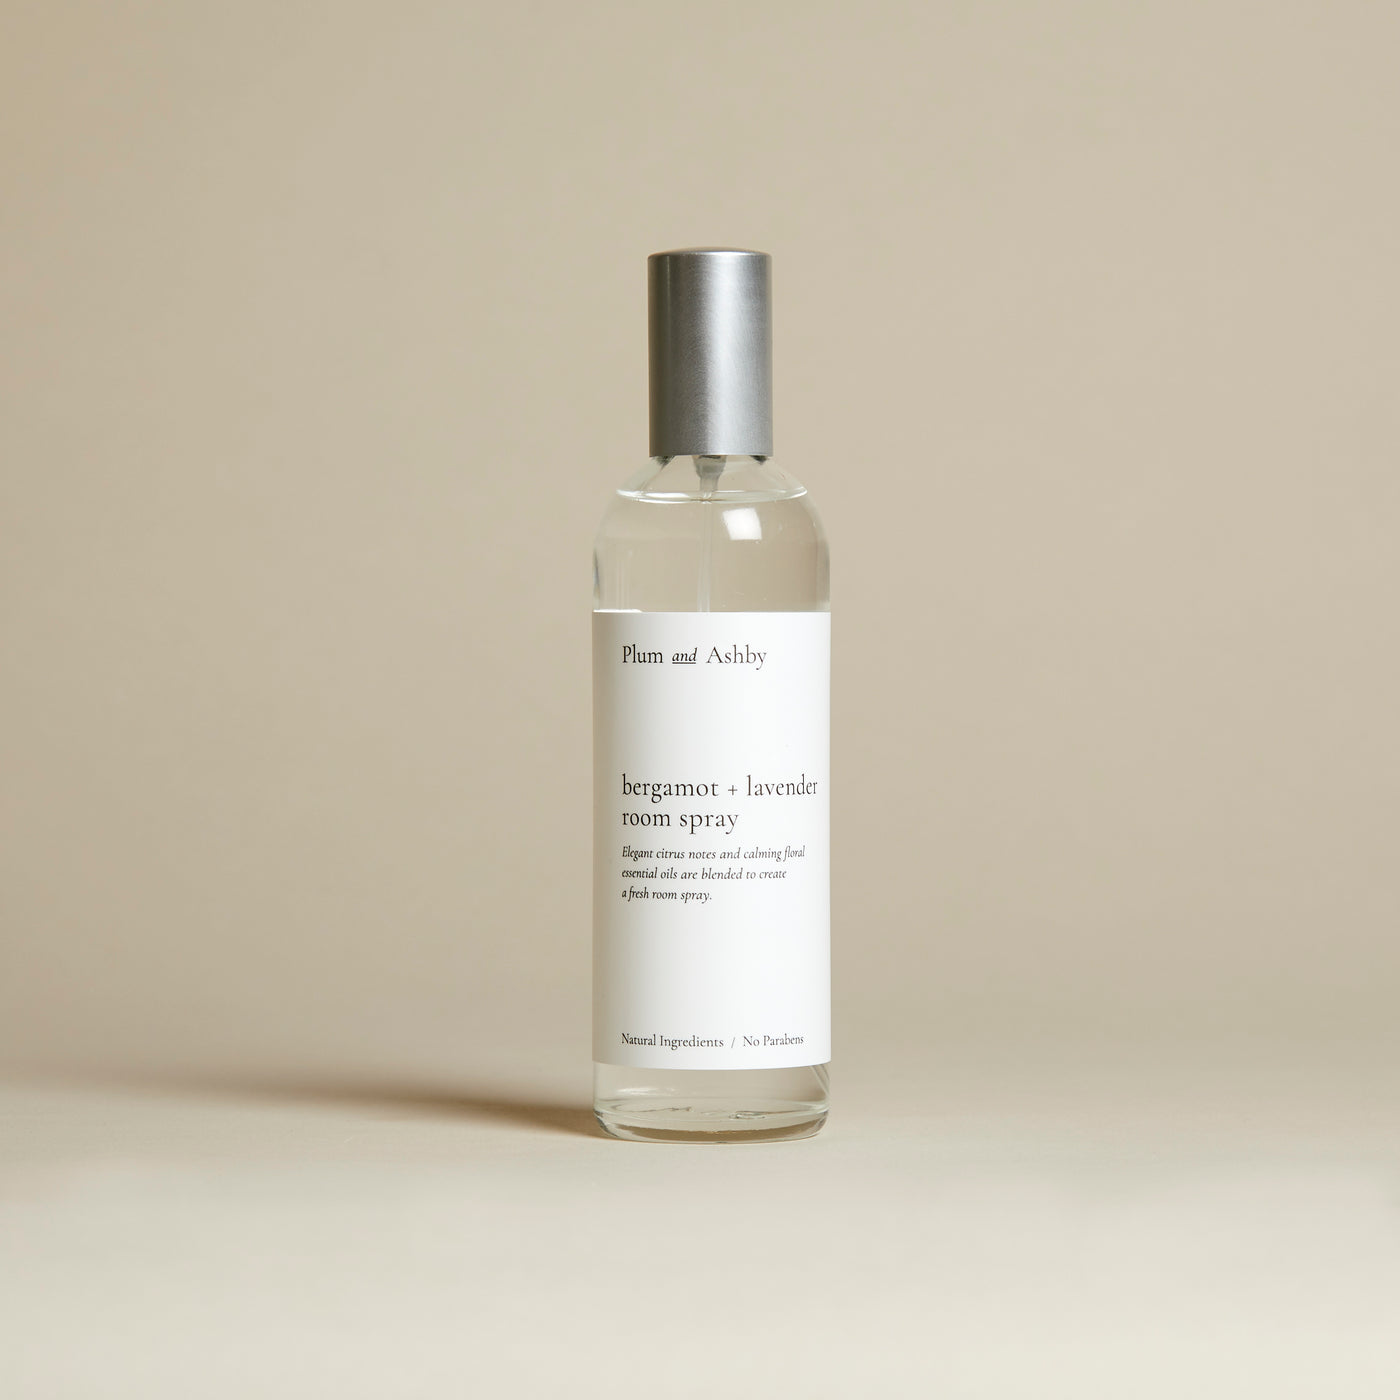 Bergamot & Lavender Room Spray